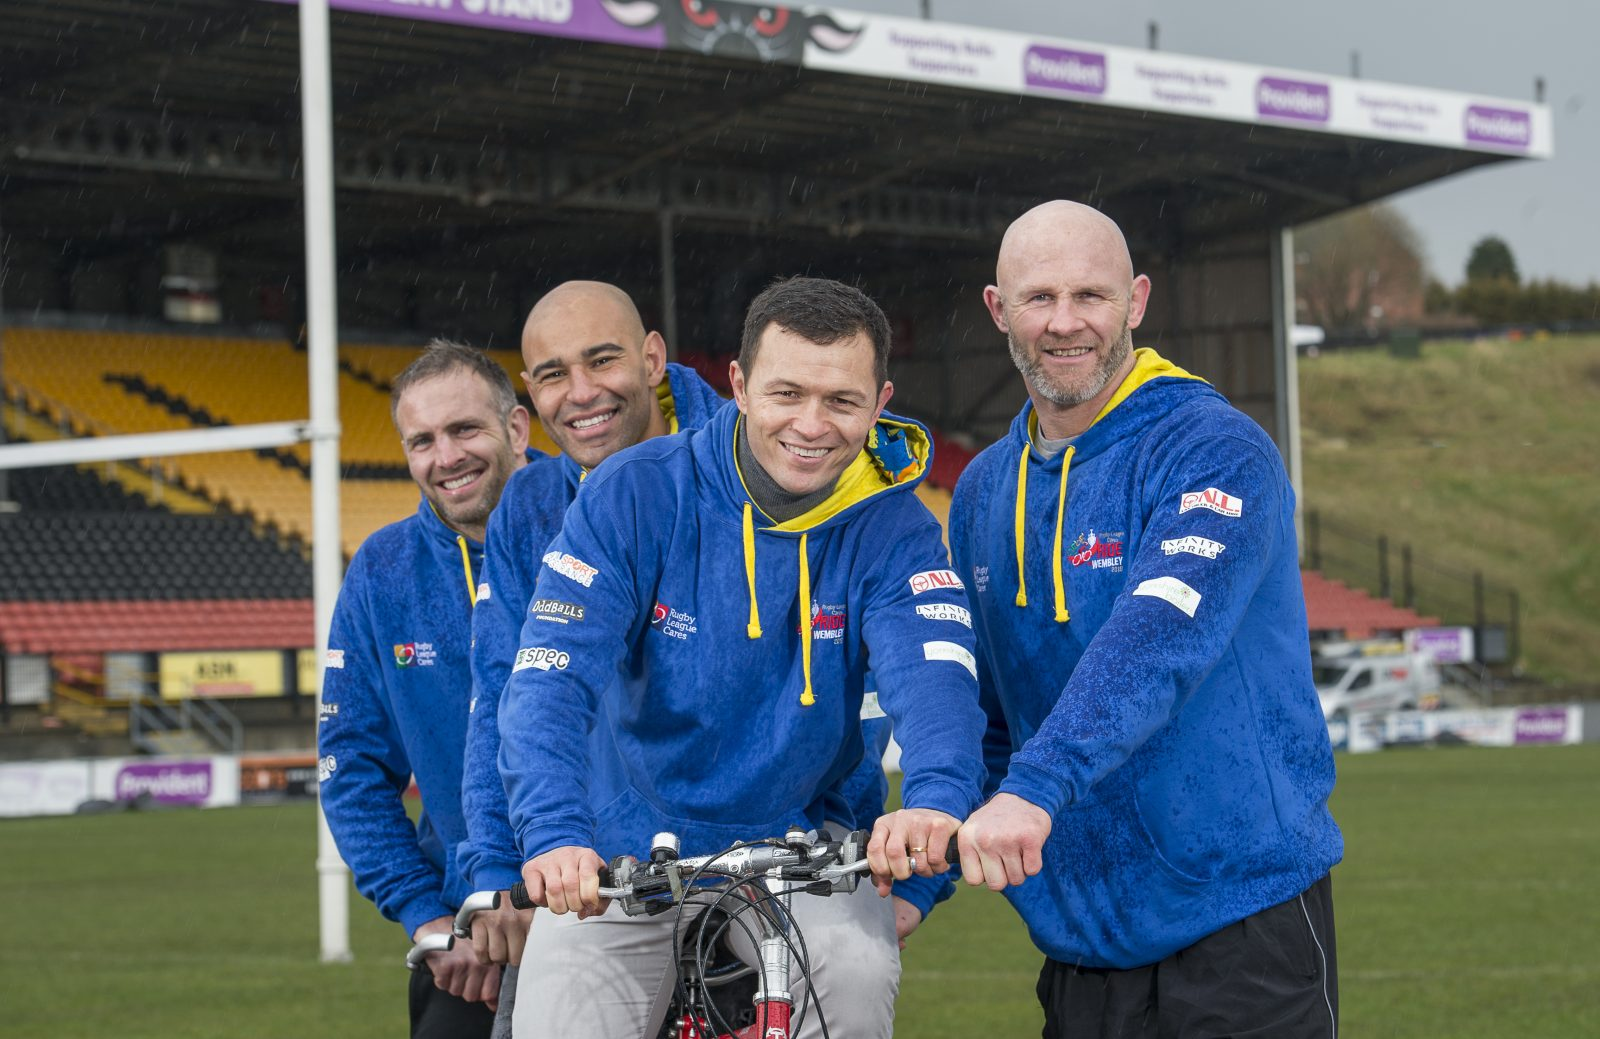 Robbie ready for his biggest challenge on the UK Red Ride to Wembley